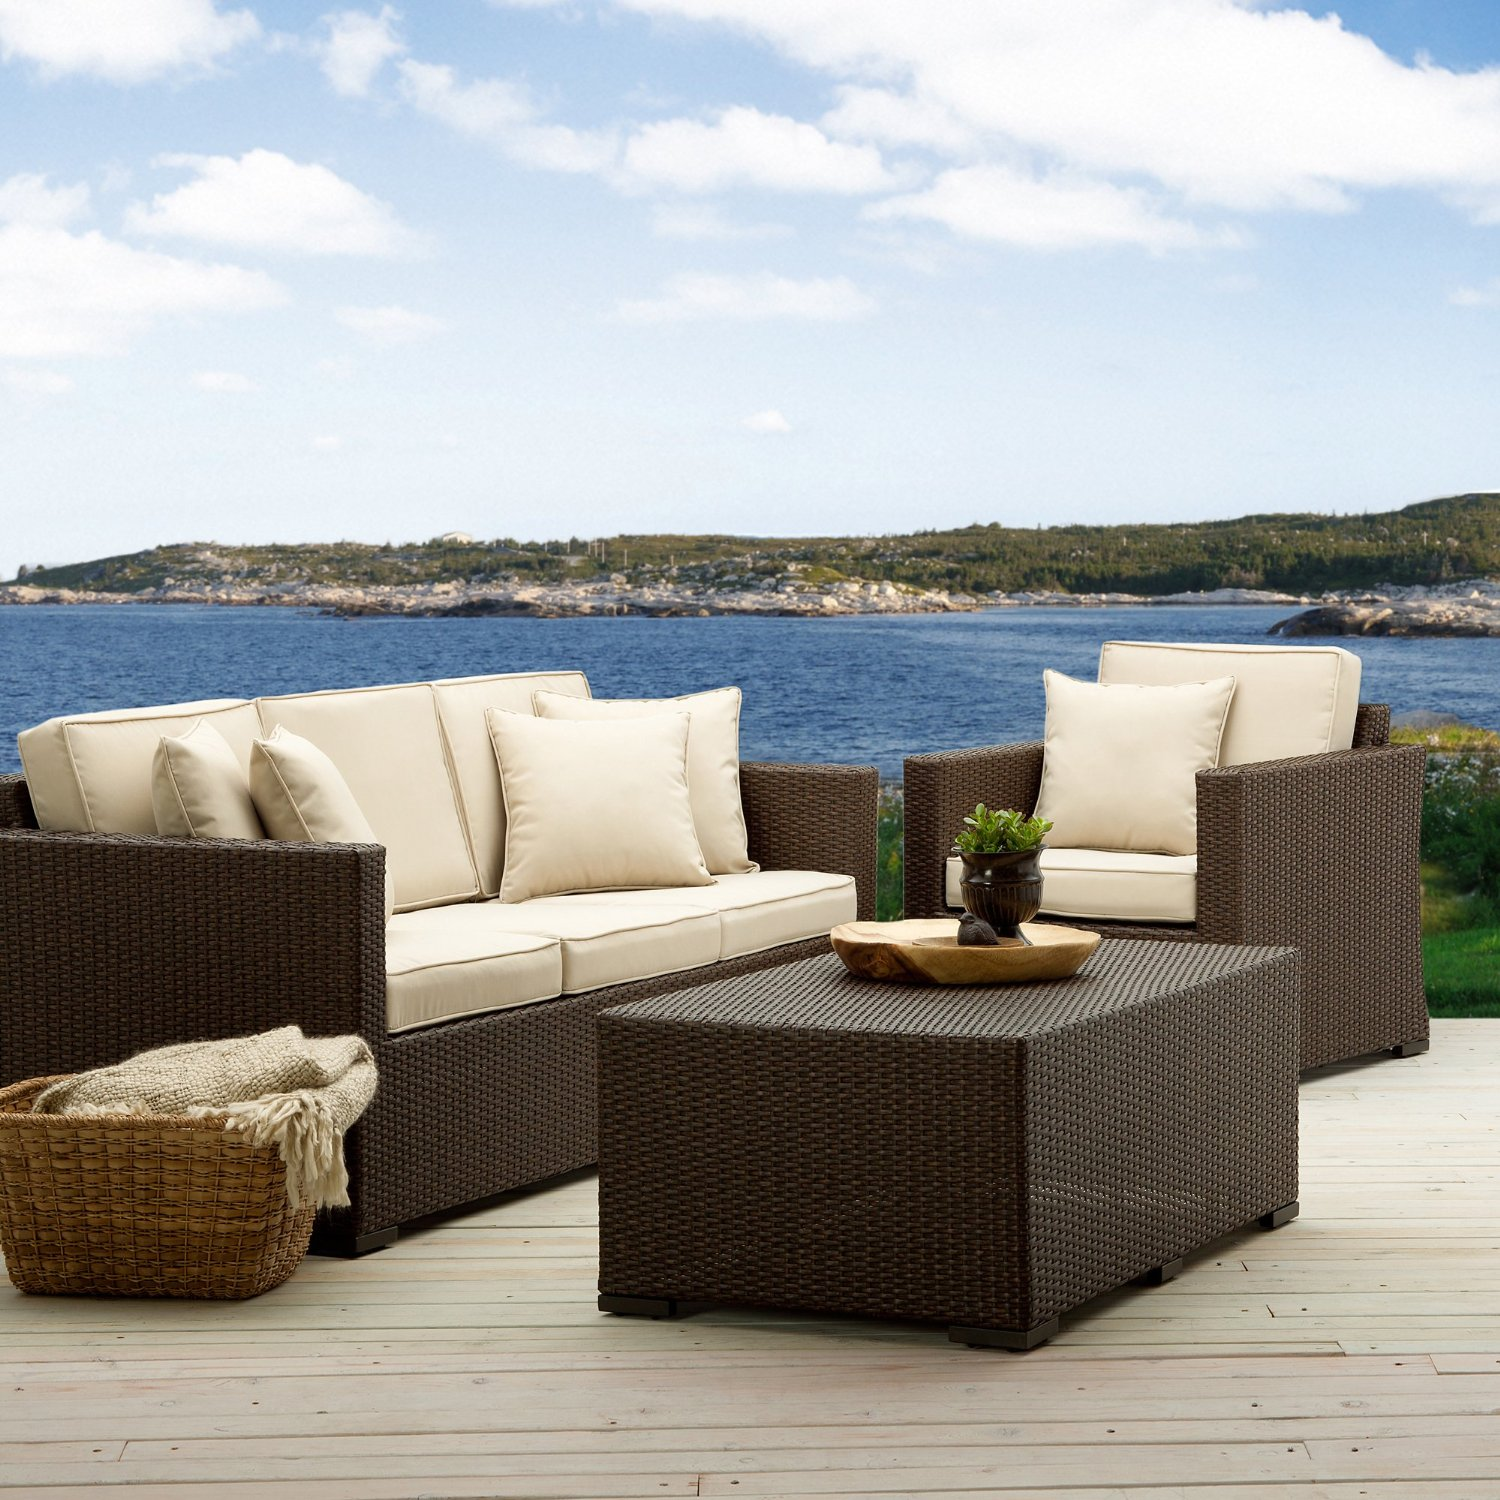 Images of ... Outdoor Modern Patio Furniture Beautiful View And Modern Patio Furniture modern outdoor patio furniture